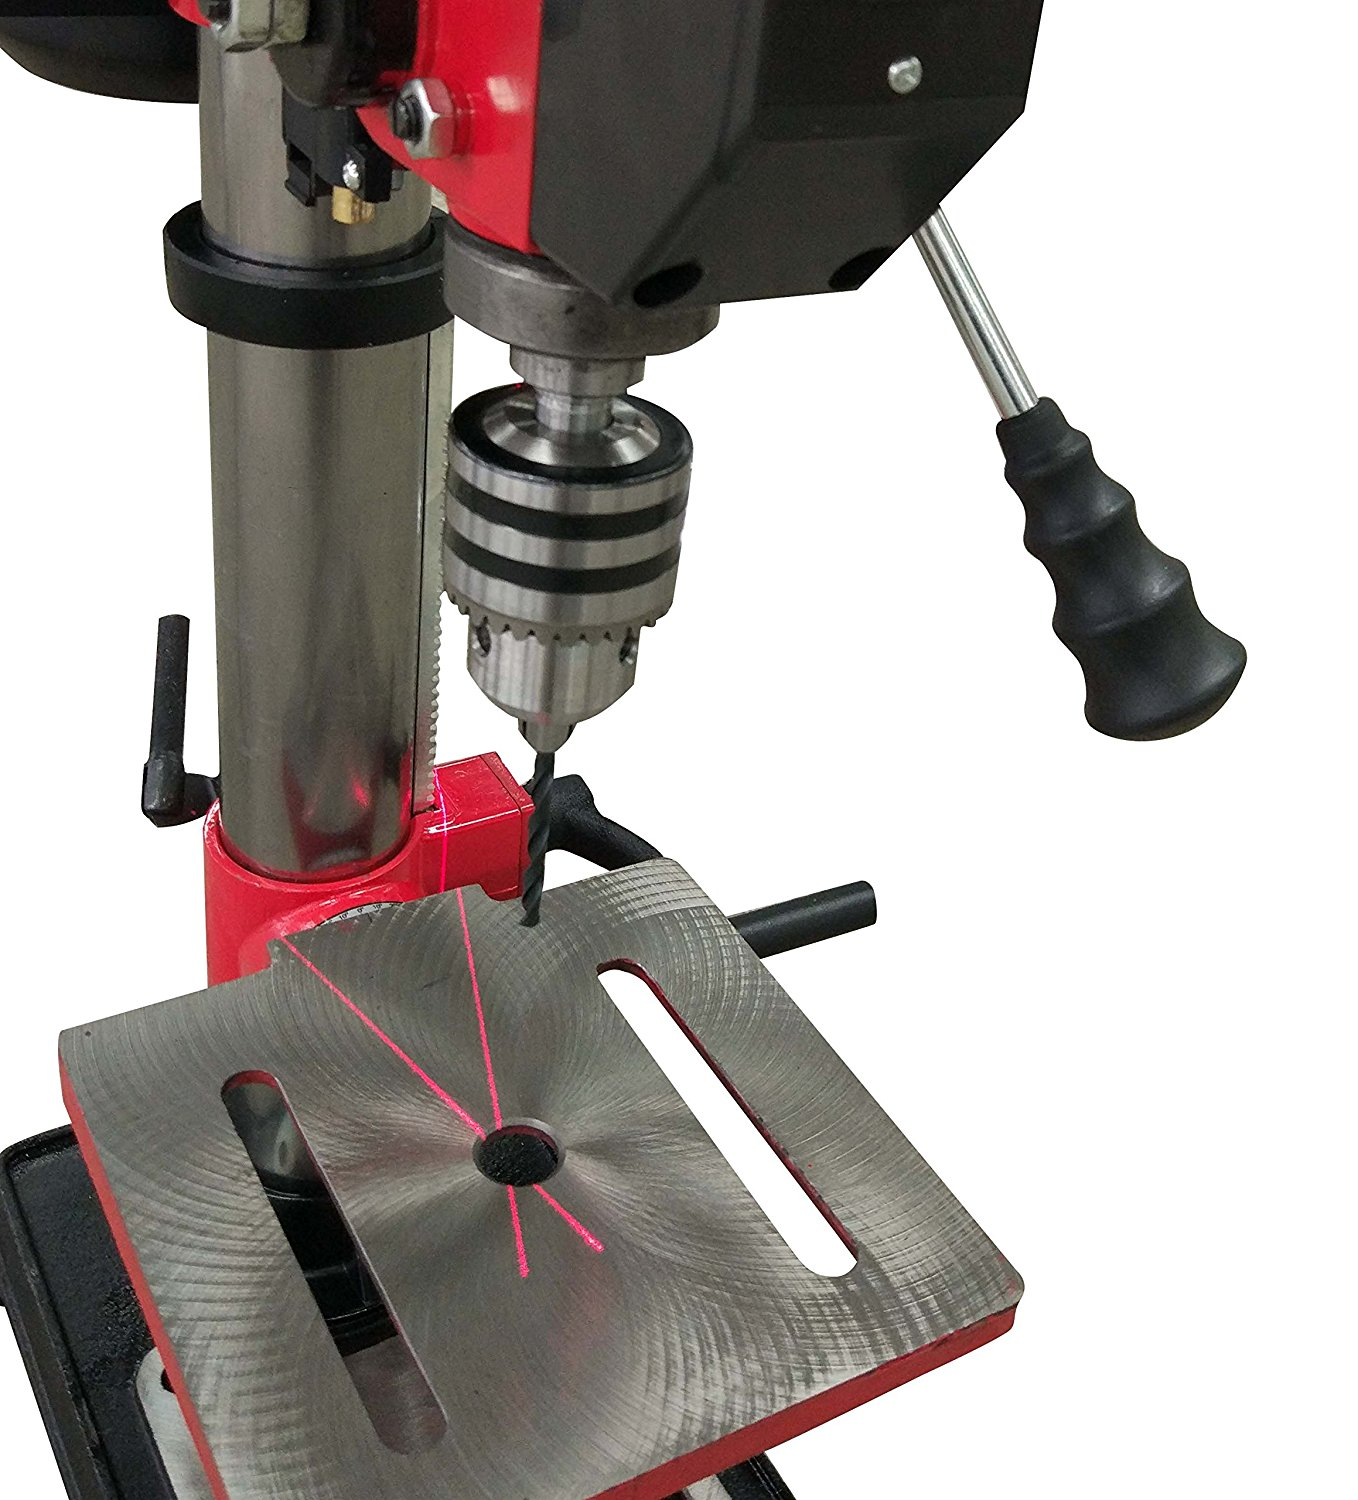 PowerSmart drill press review